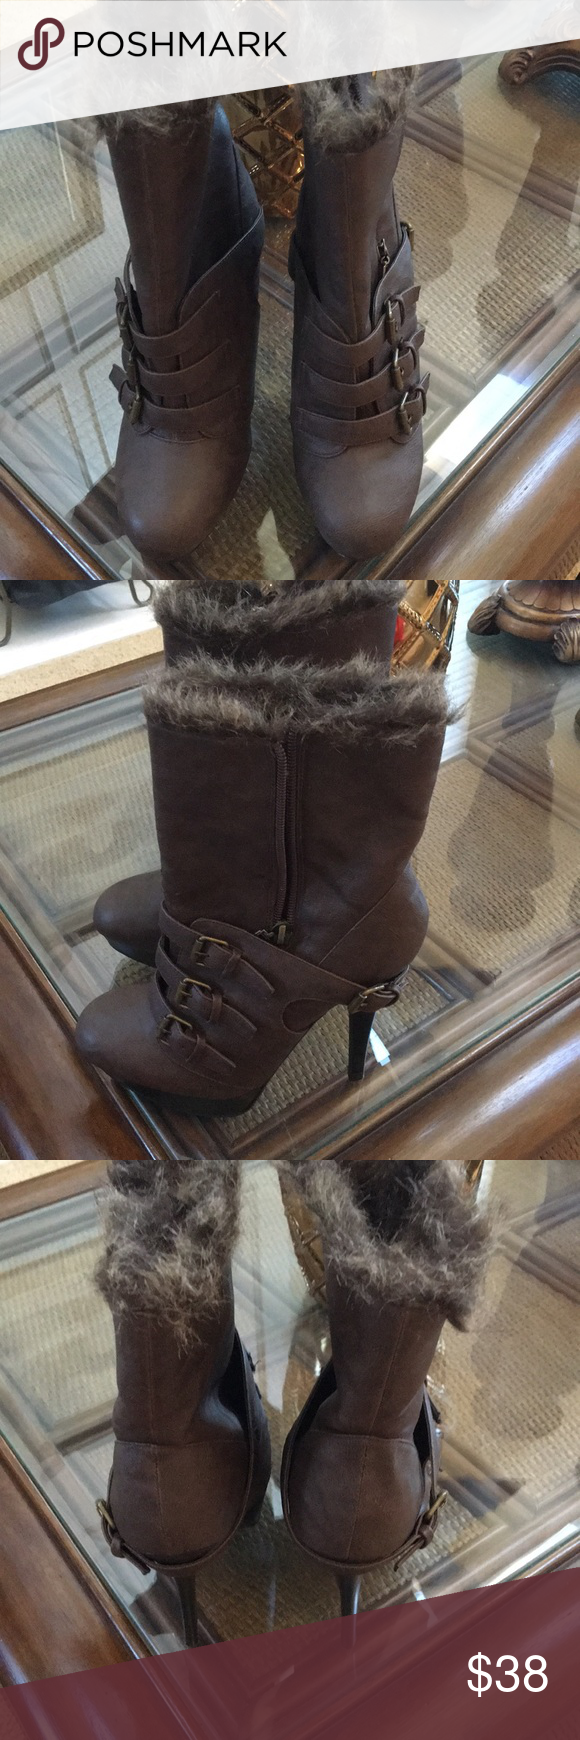 guess boots for sale